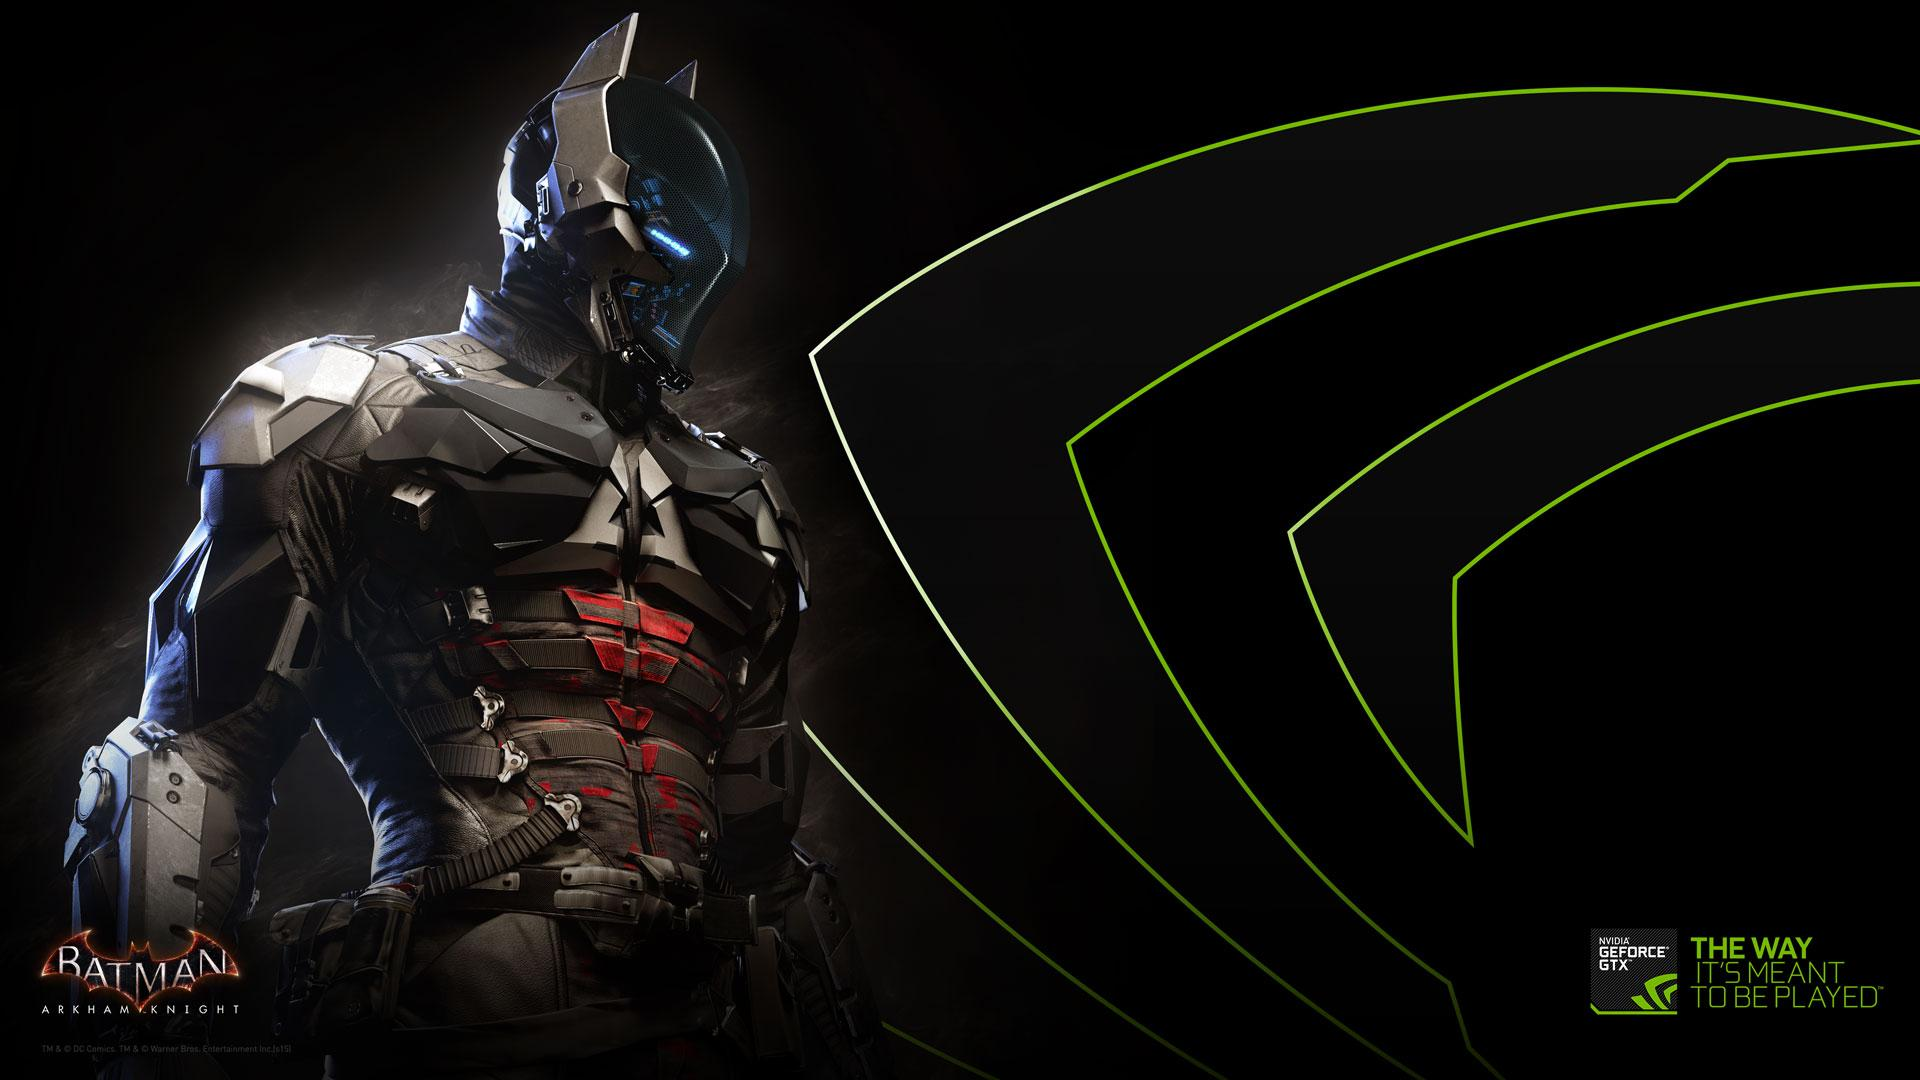 Download these Batman: Arkham Knight Wallpapers | GeForce